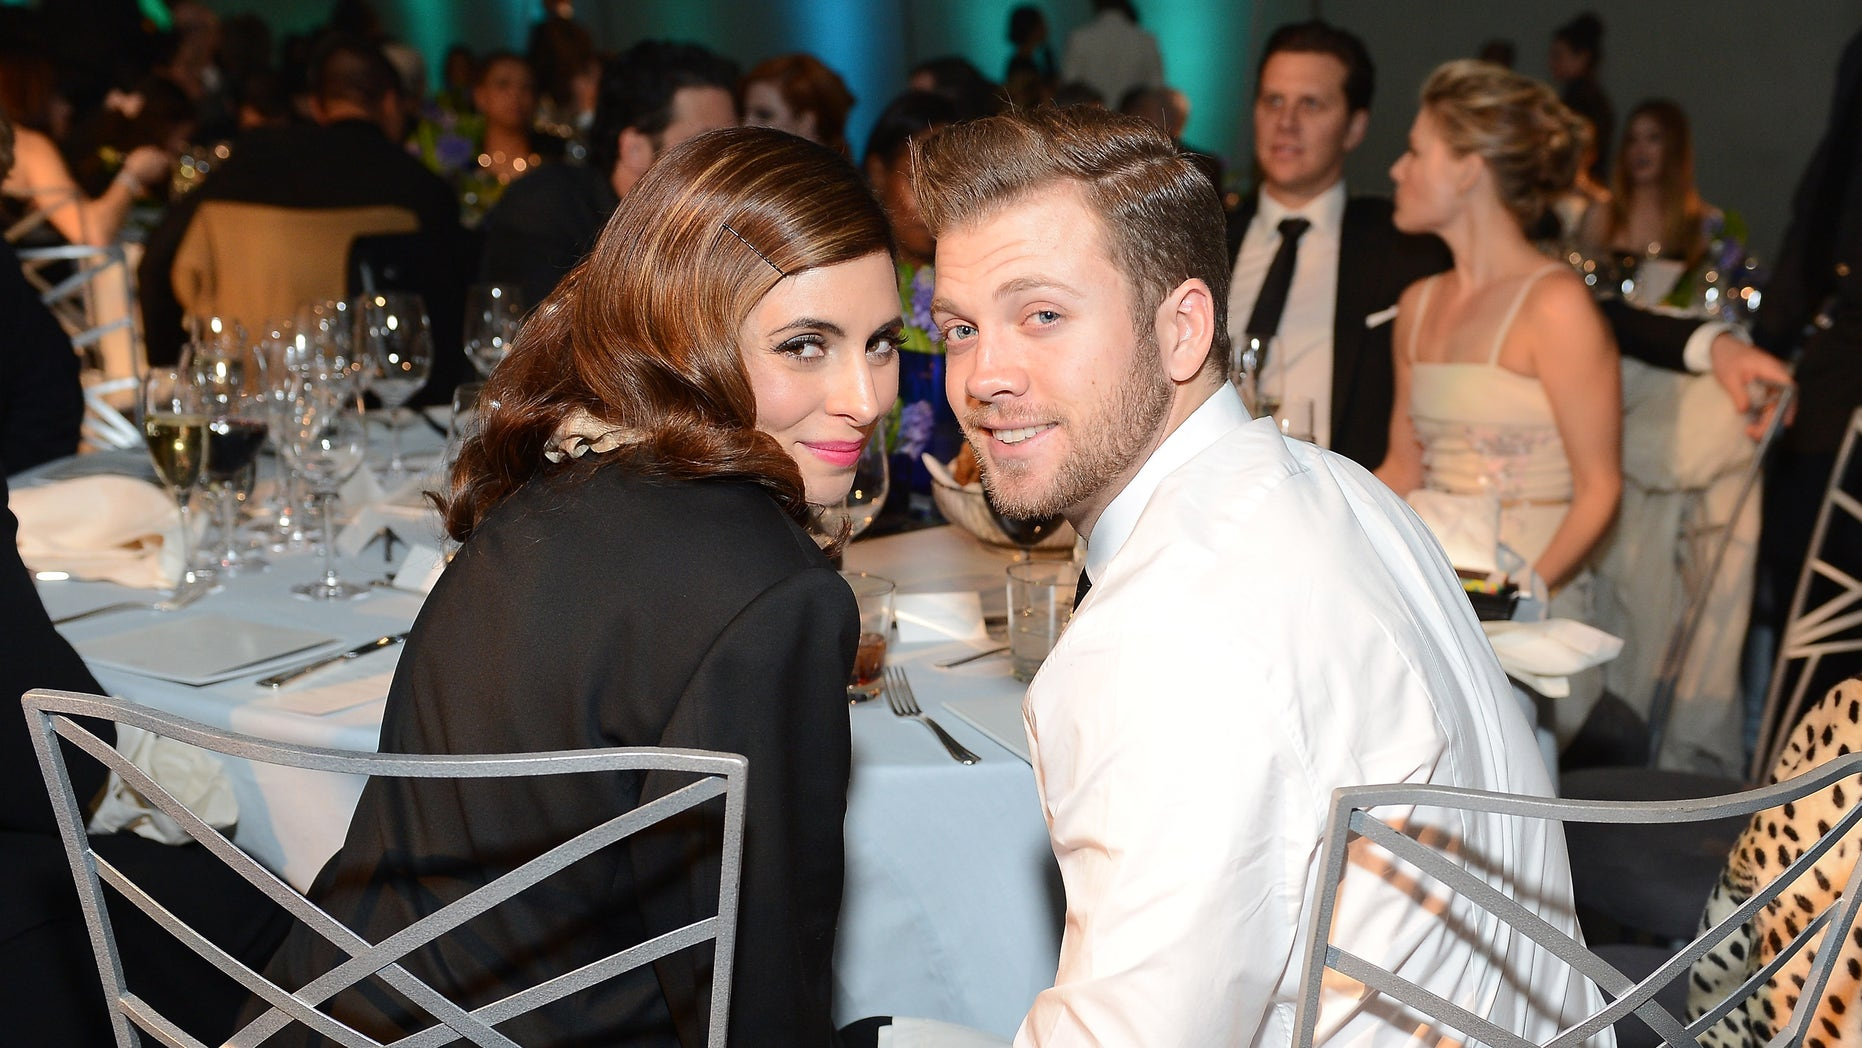 Actress Jamie-Lynn Sigler and Cutter Dykstra attend The Art of Elysium's 6th Annual HEAVEN Gala on January 12, 2013 in Los Angeles, California.